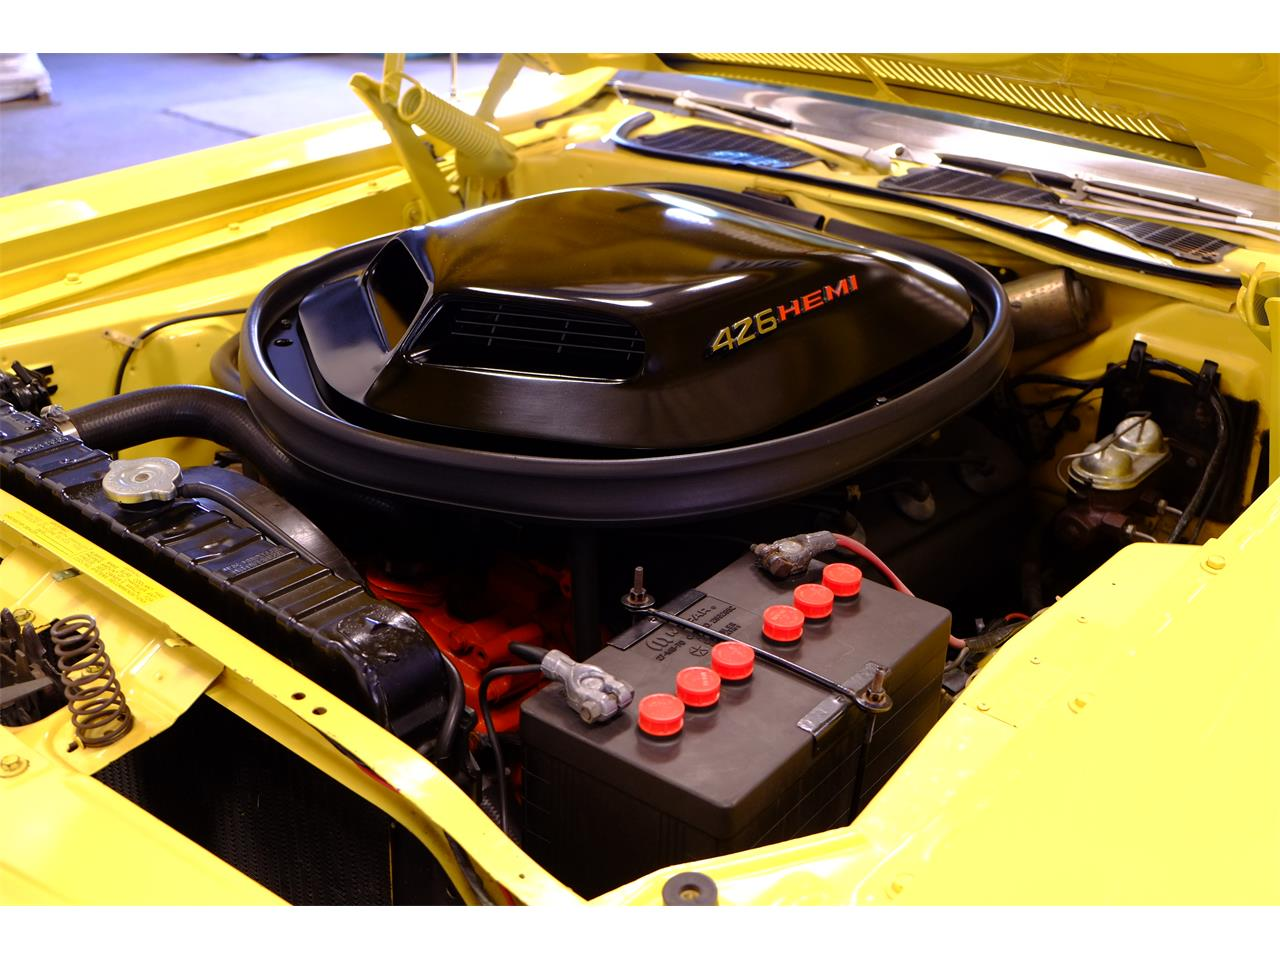 Large Picture of Classic '71 Challenger R/T 426 Hemi - $325,000.00 - JY6E